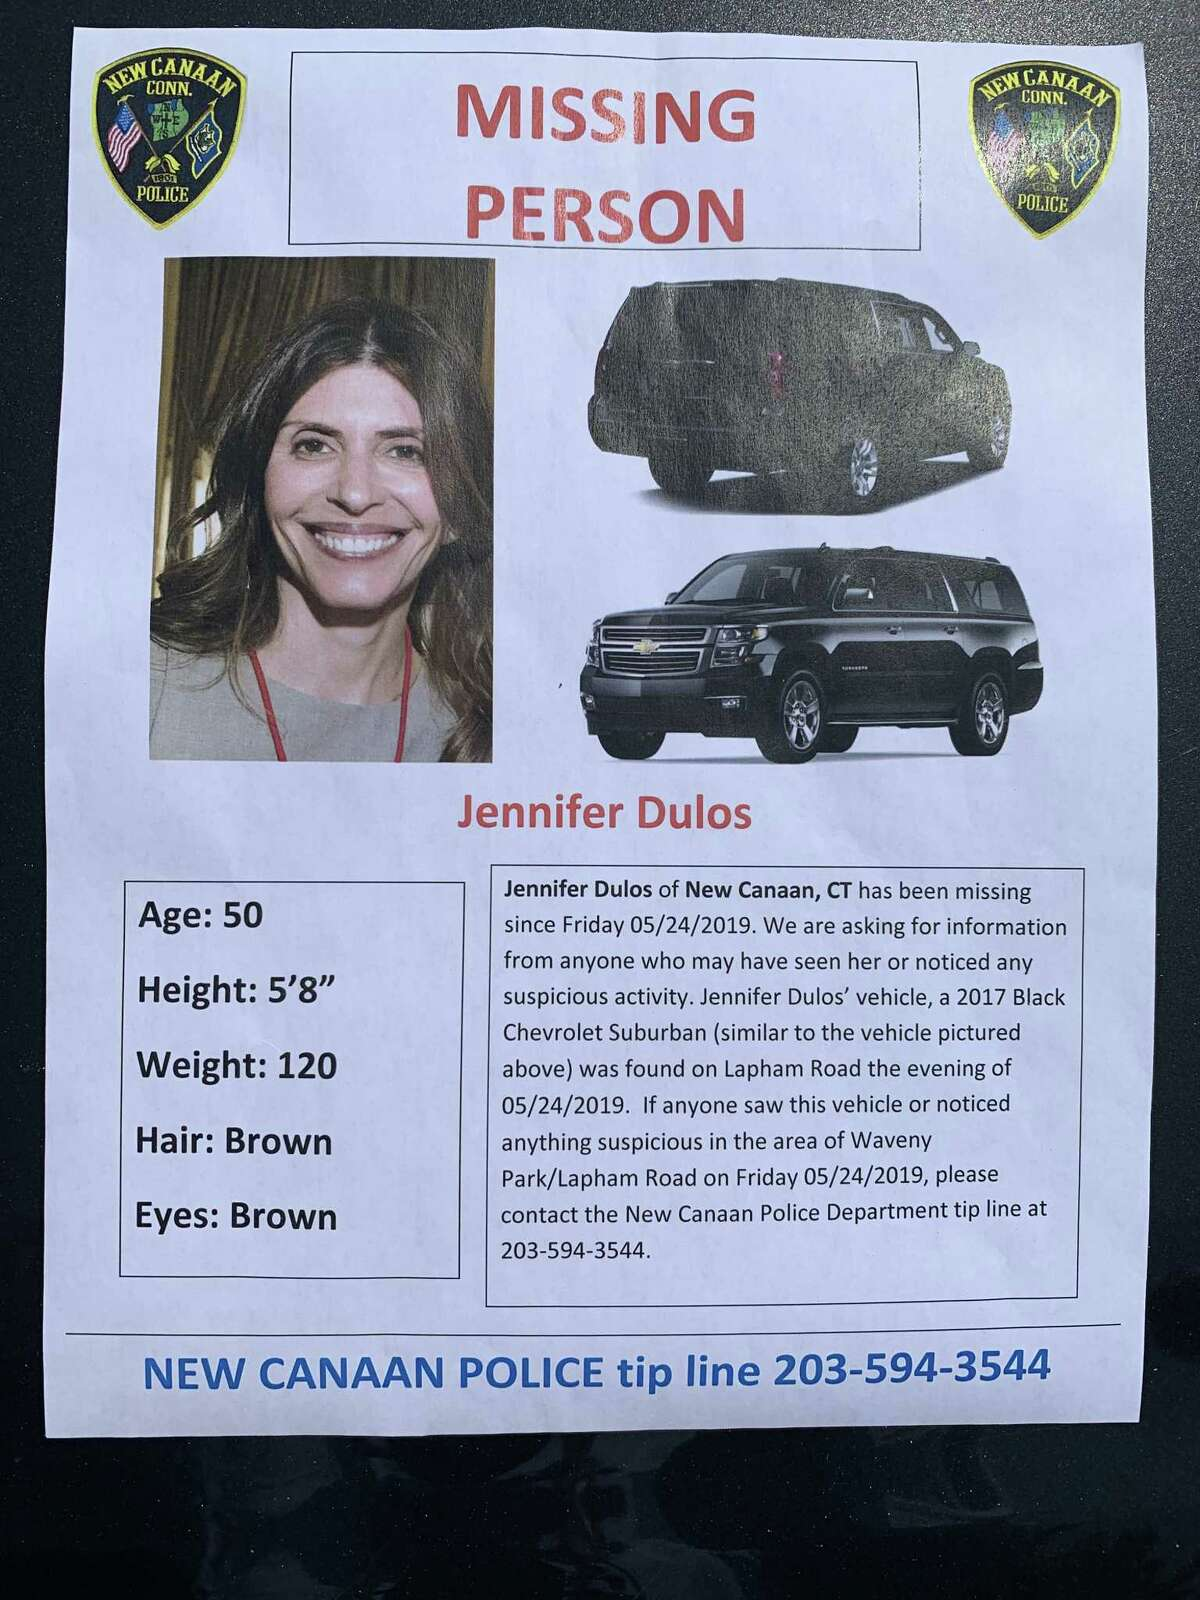 Police handed out missing persons flyers near where Jennifer Dulos' SUV was found on Lapham Road. This will be the second time that the Dulos case will be featured on Dateline. The first episode to discuss the case aired last September. Recently, the disappearance was given the documentary treatment on ID Discovery with the premiere of